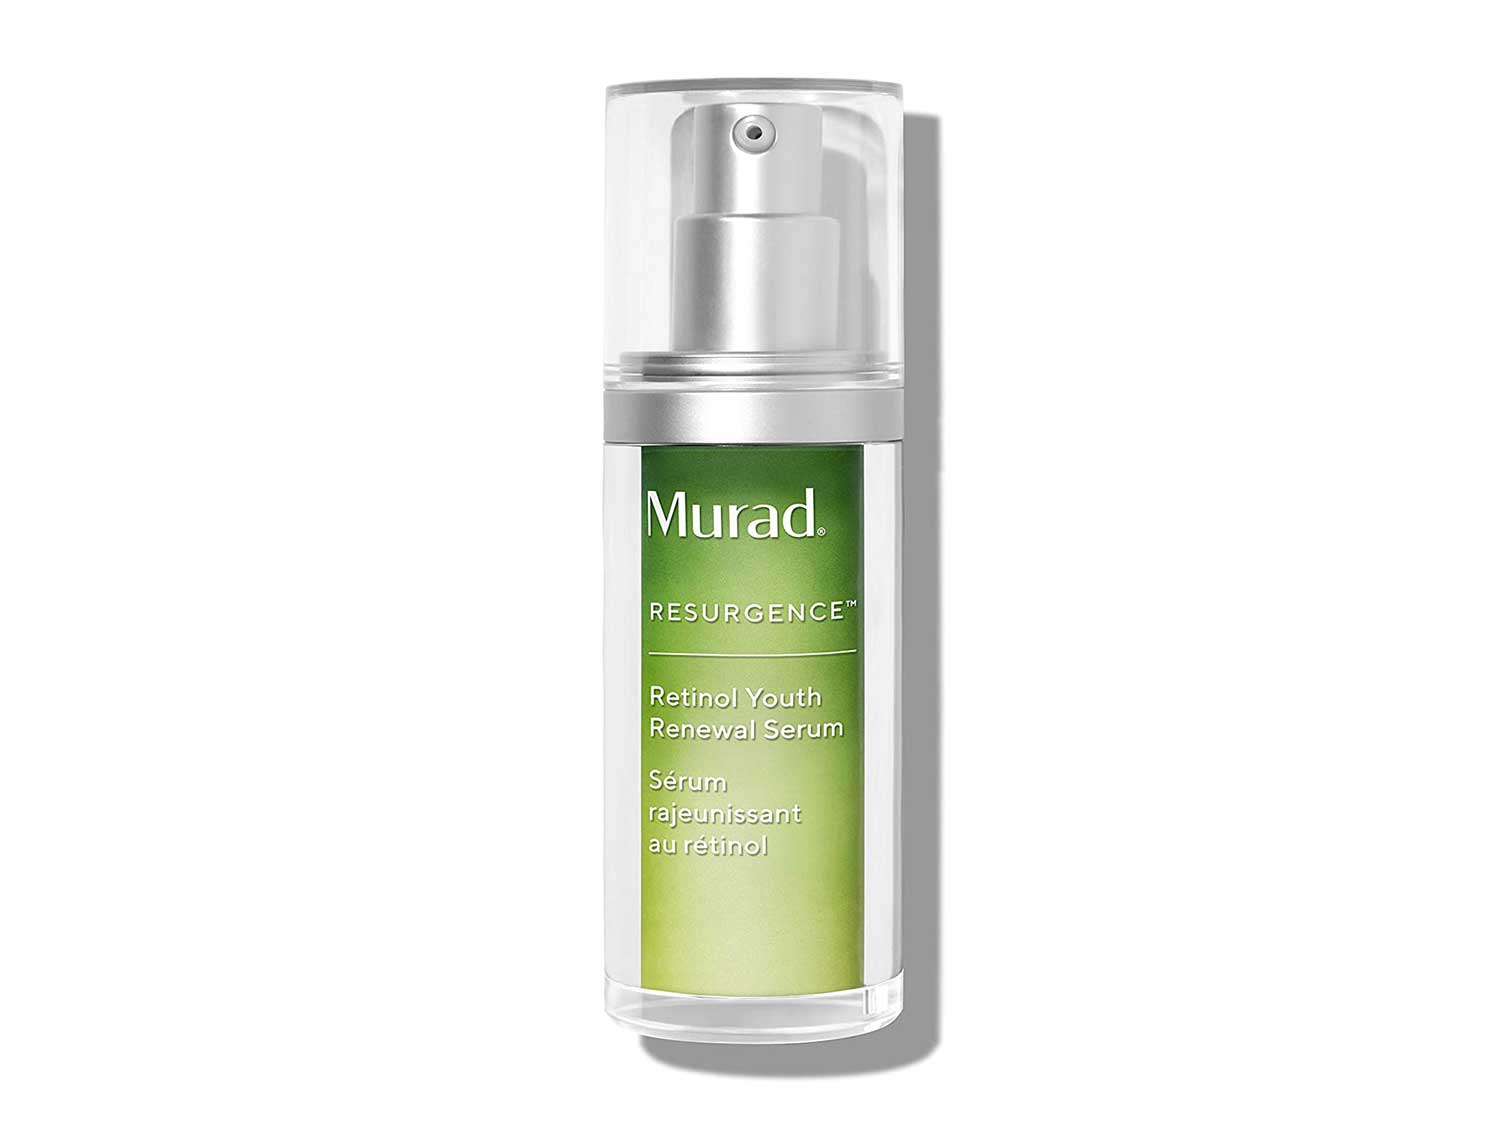 Murad Resurgence Retinol Youth Renewal Serum - Anti-Aging Serum for Lines and Wrinkles - Retinol Serum for Face and Neck - Youth Serum for Smoother Skin